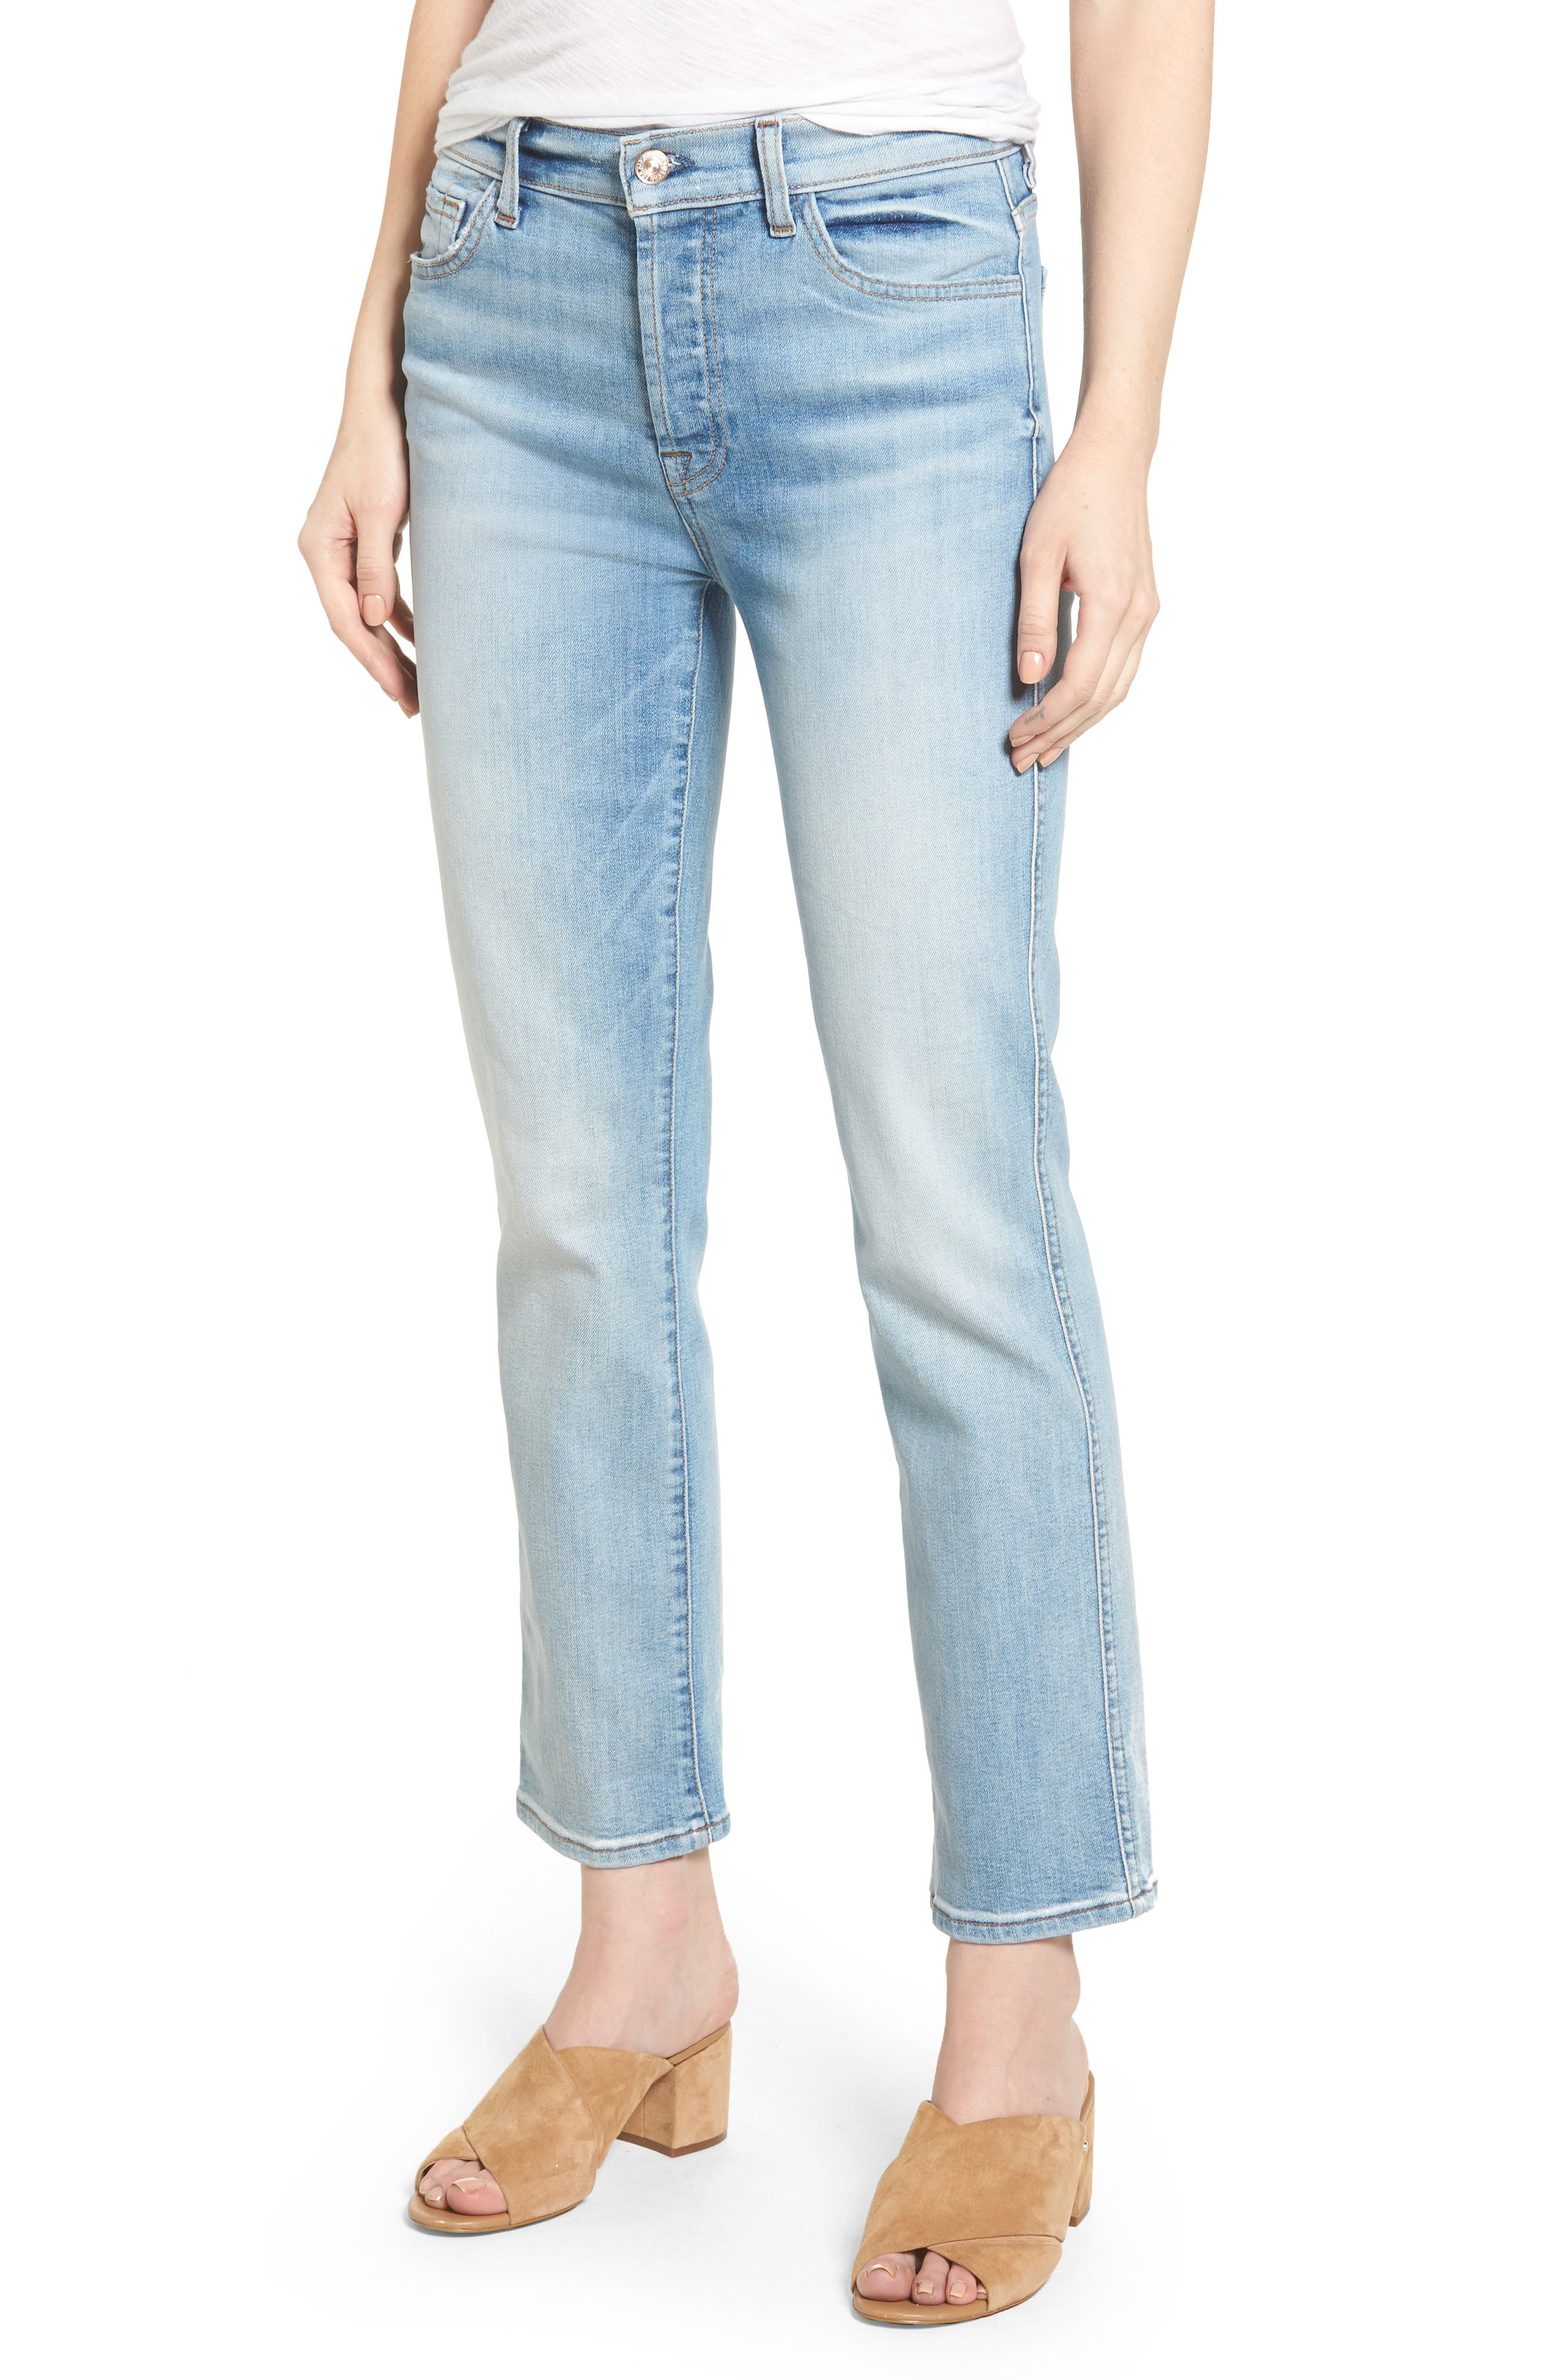 Alternate Image 1 Selected - 7 For All Mankind® Edie High Waist Crop Jeans (Vintage Azure)